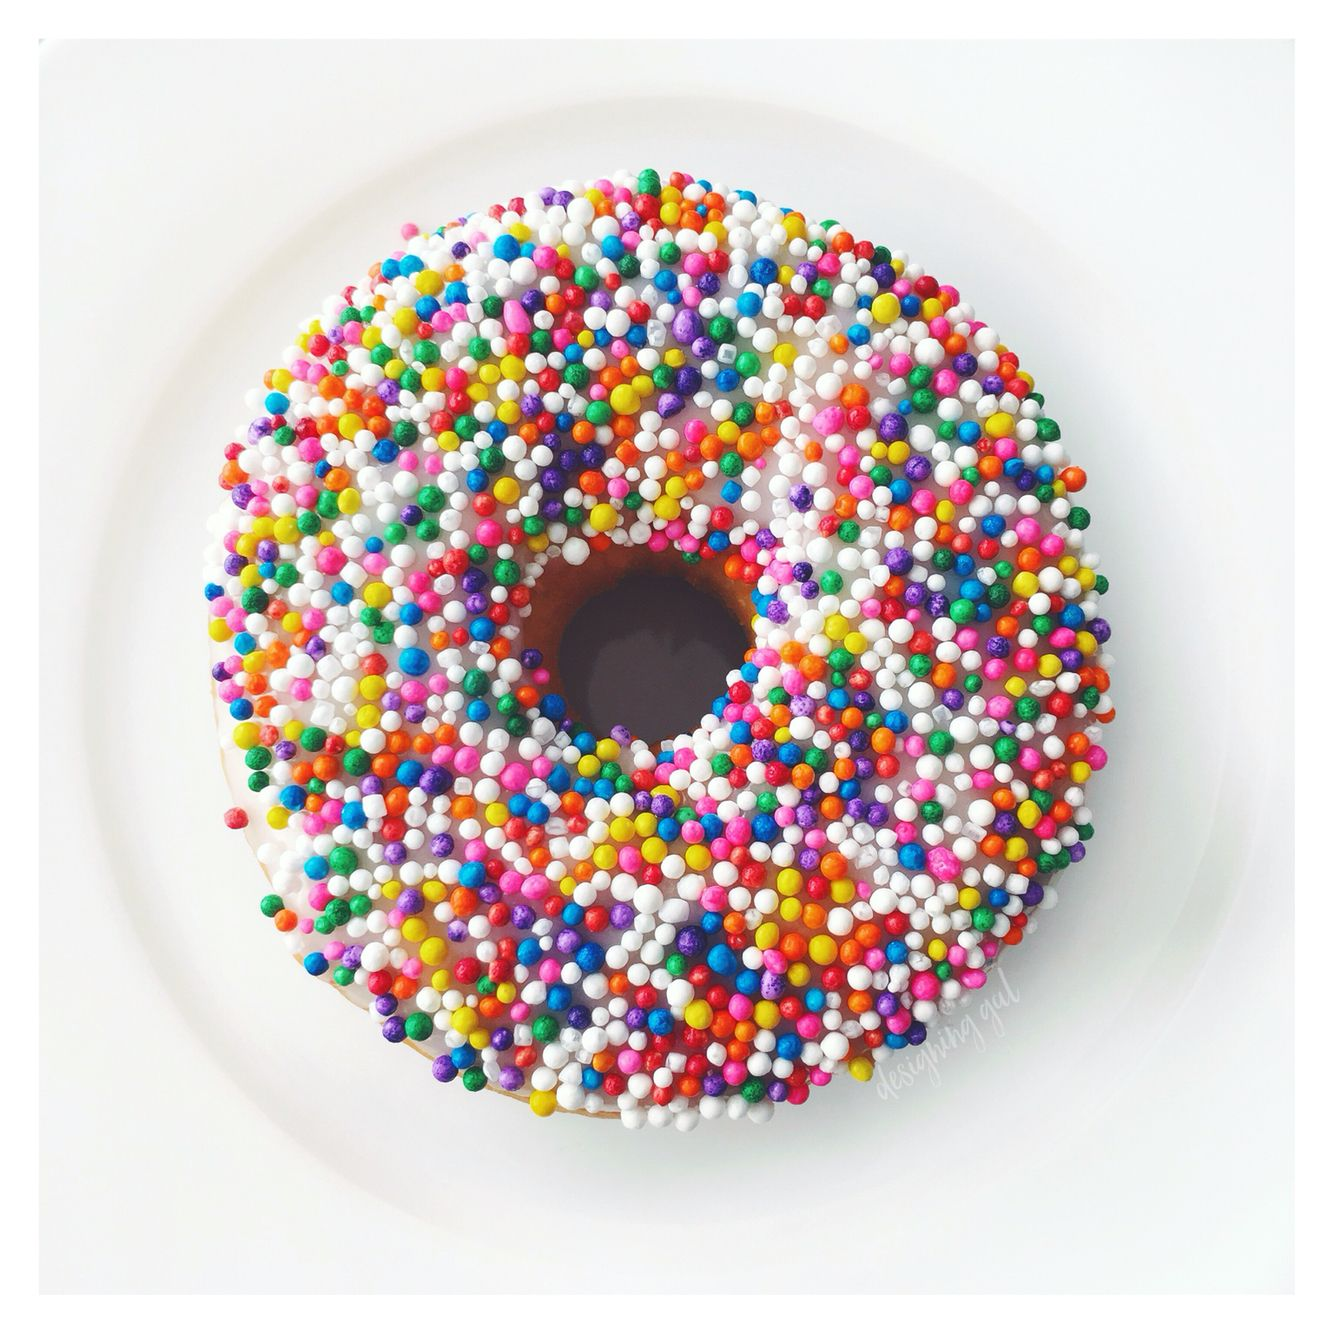 Colourful sprinkle donut | The Good Life in 2019 | Sprinkle